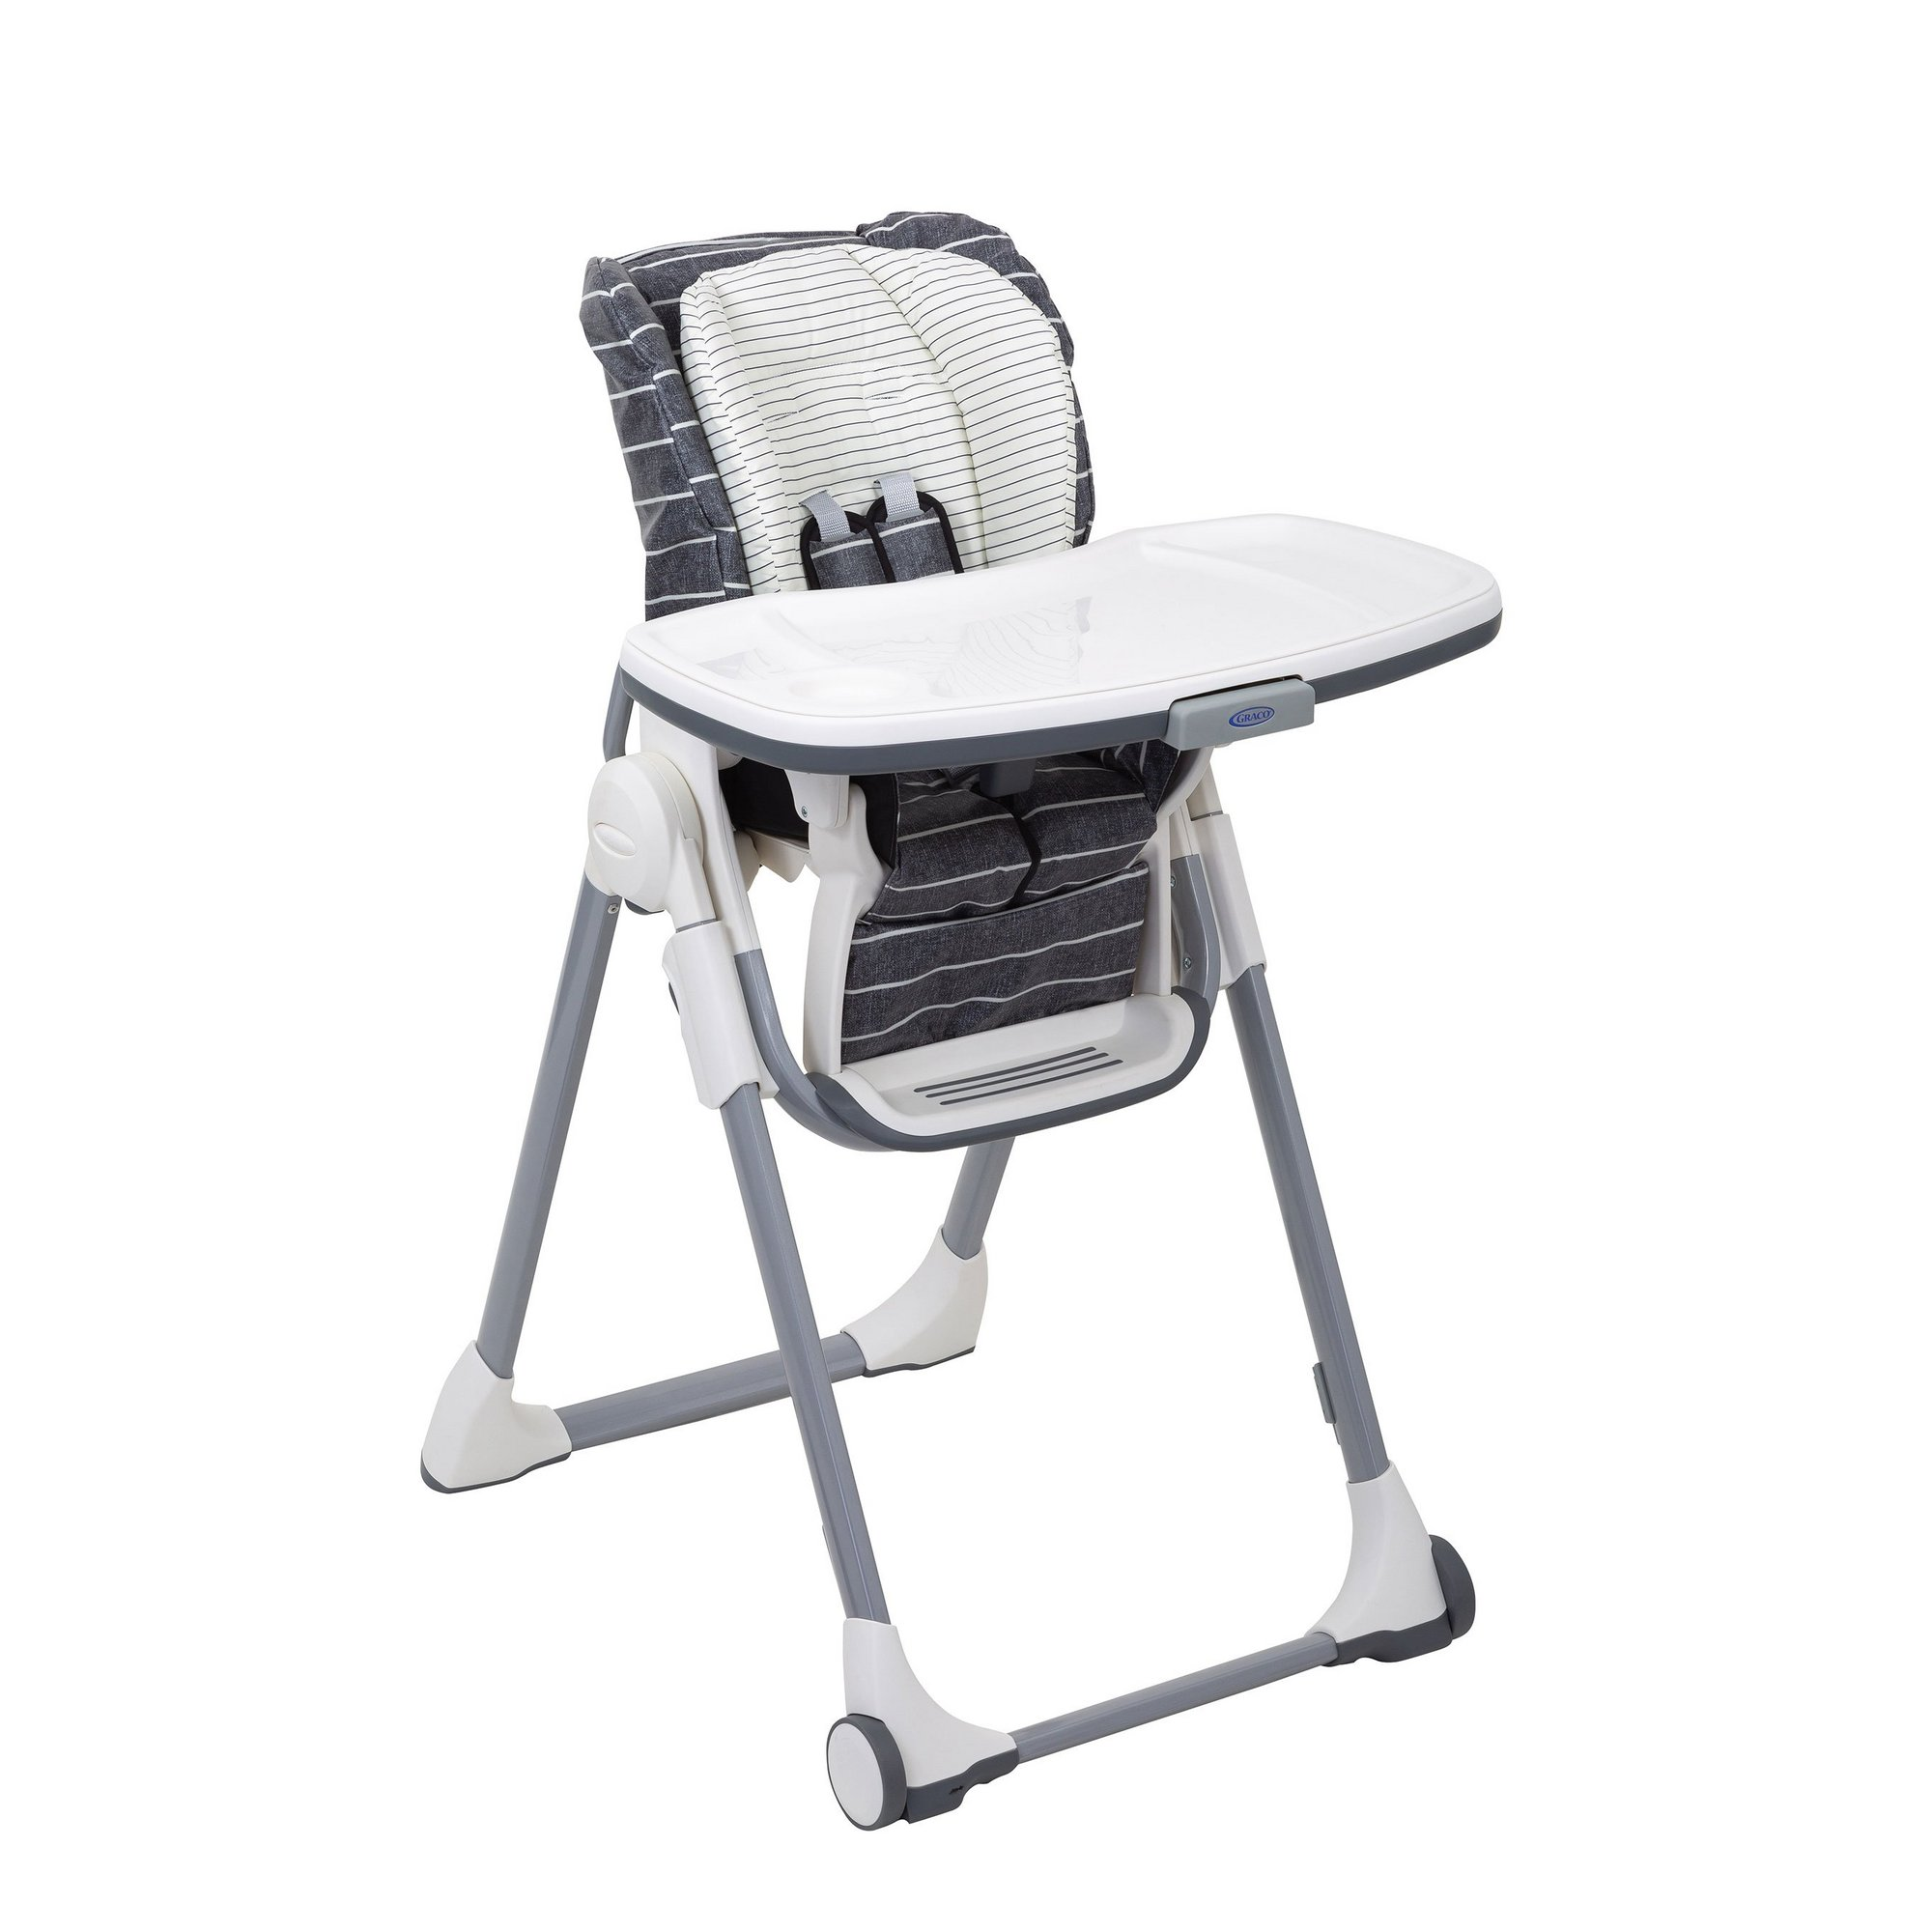 Image of Graco Swift Fold Suits Me Highchair